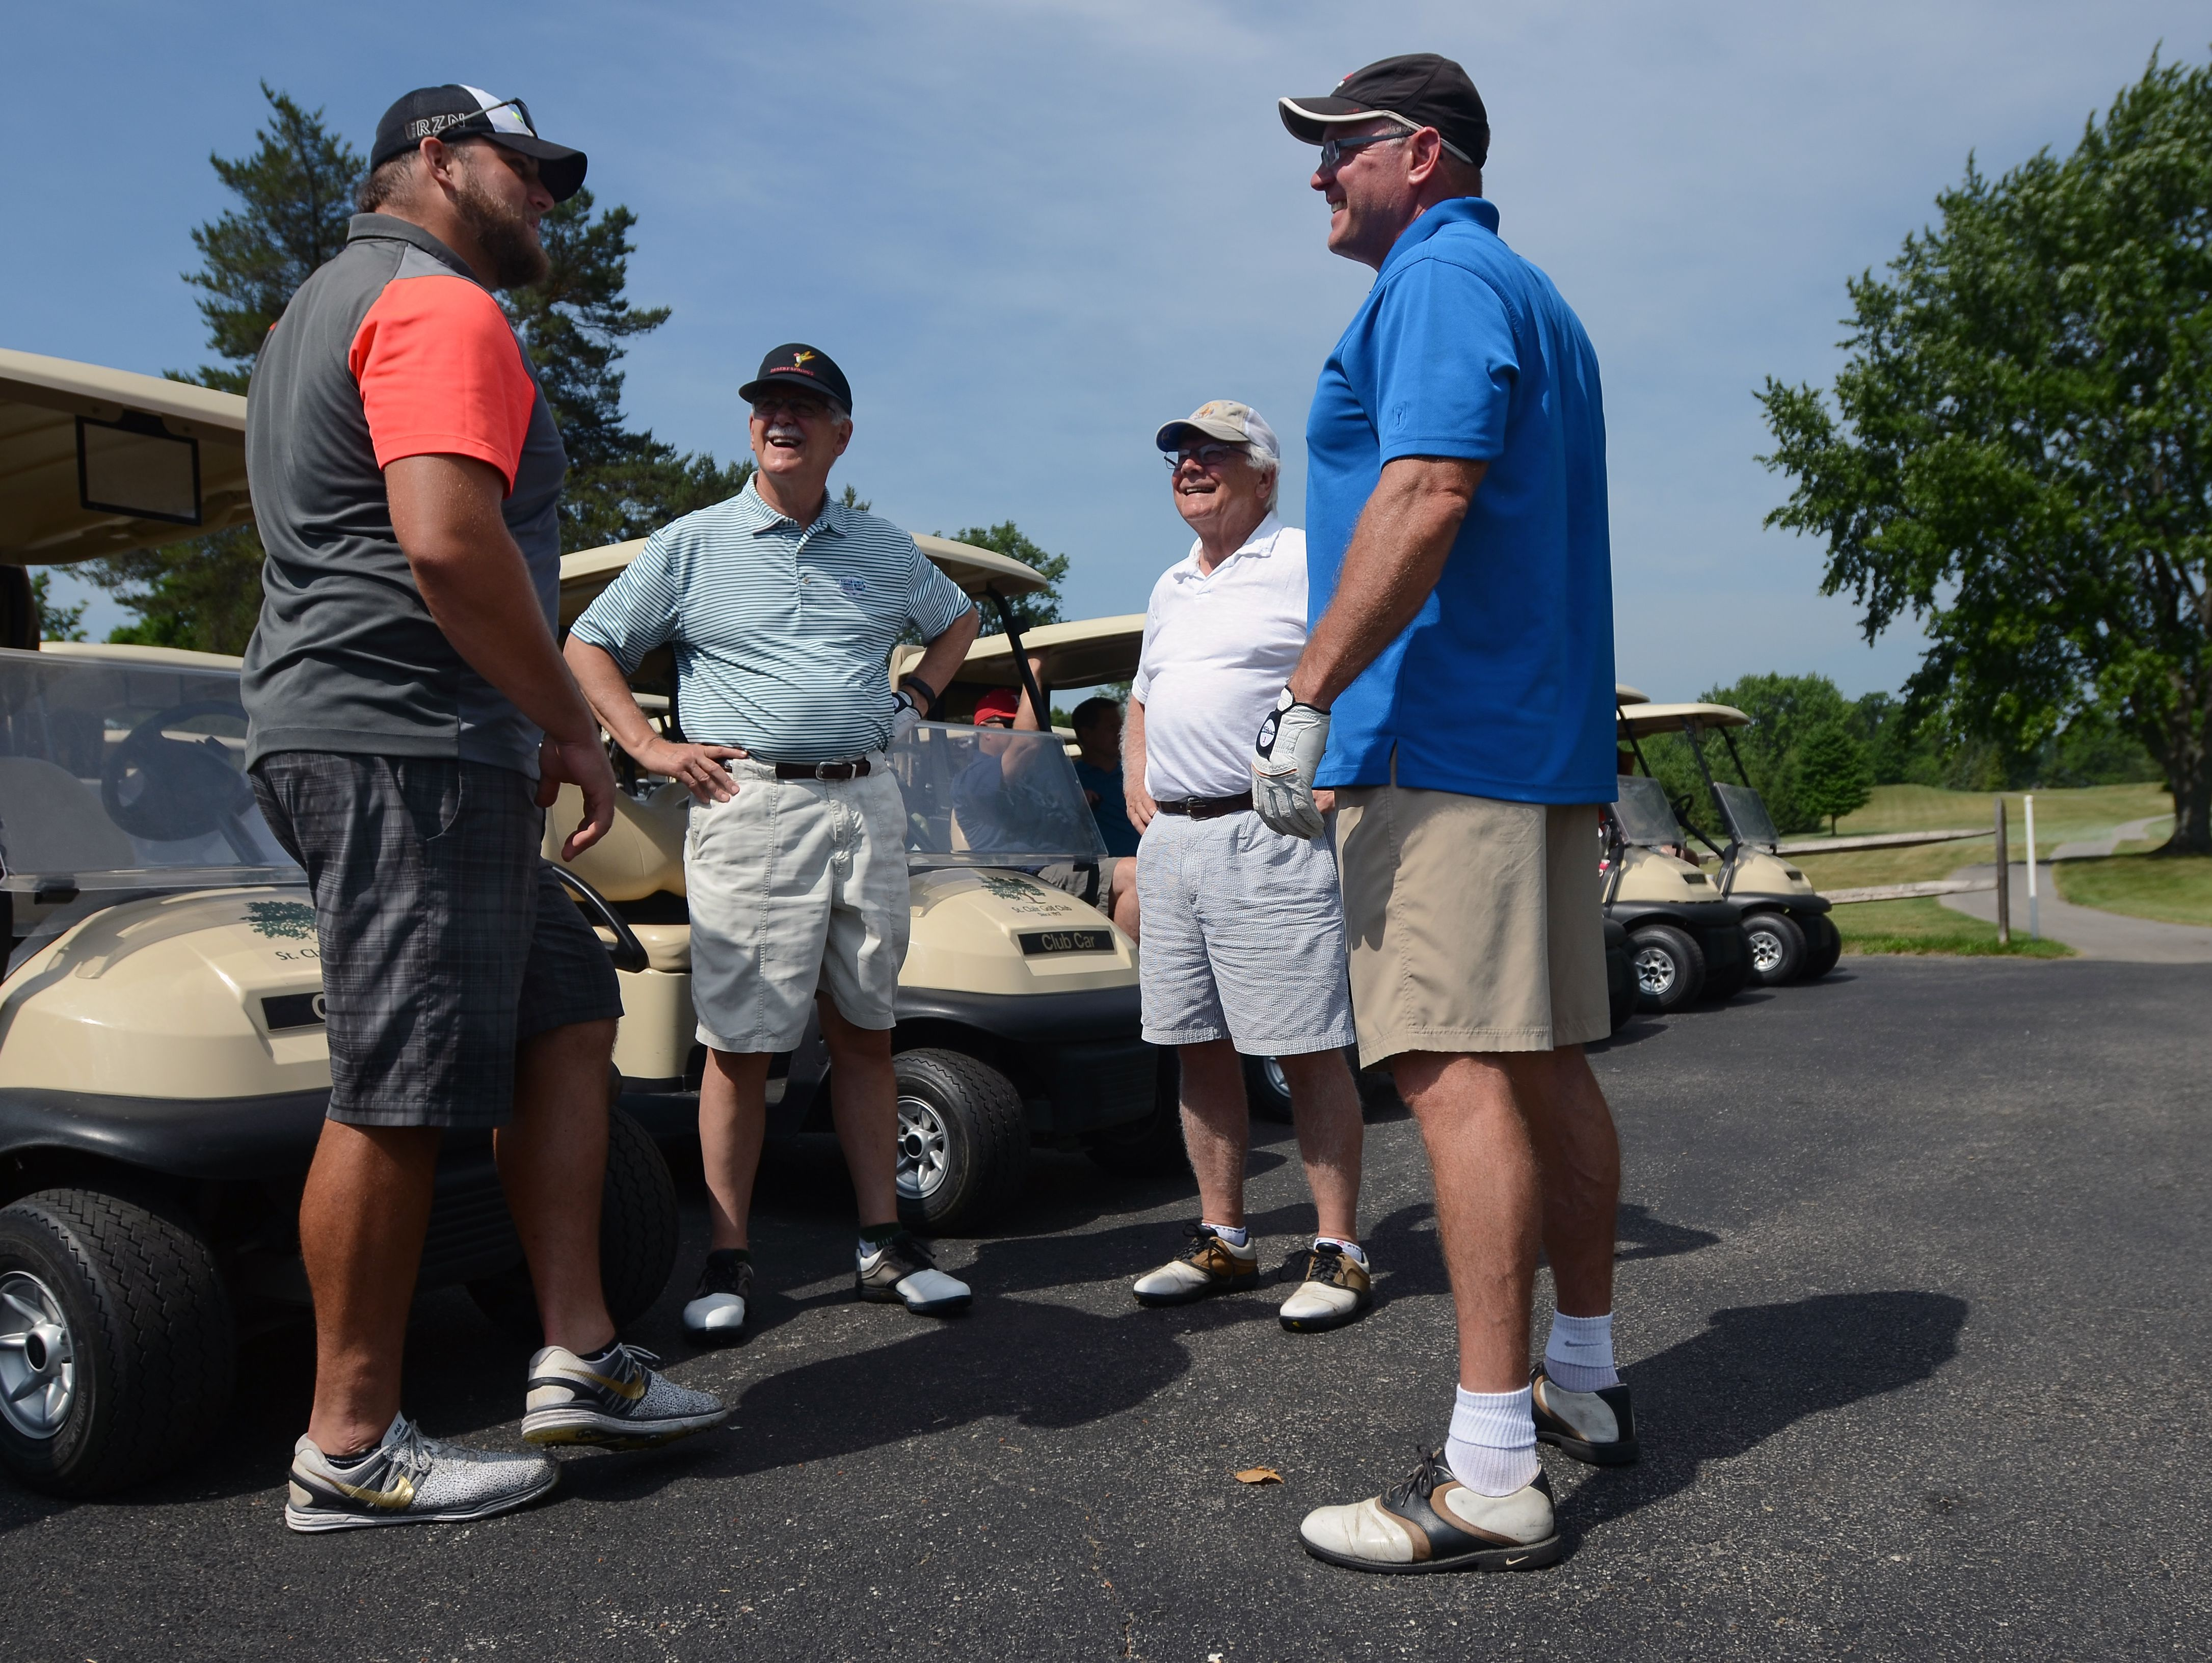 Tim Lelito meets with Jeff Bohm, right, and other members of the outing Monday, June 20, during the Lelito Legacy Golf Outing at St. Clair Golf Cub.